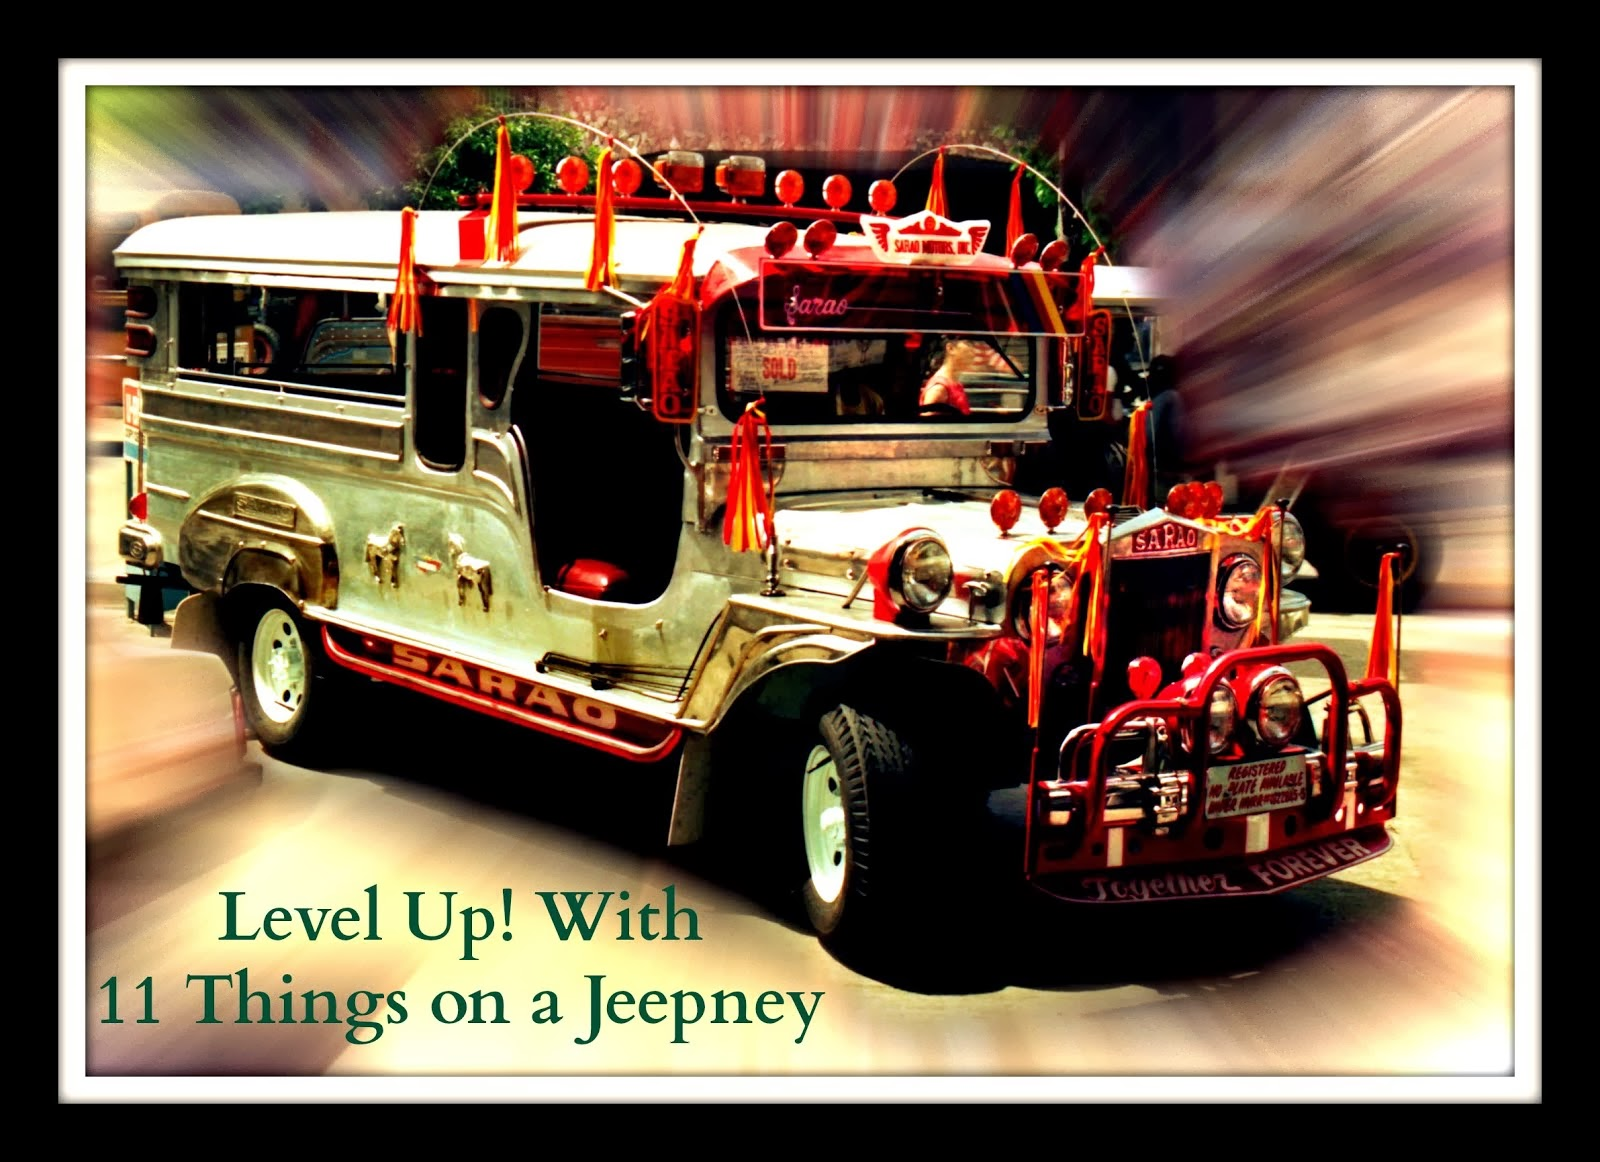 11 Things on a Jeepney